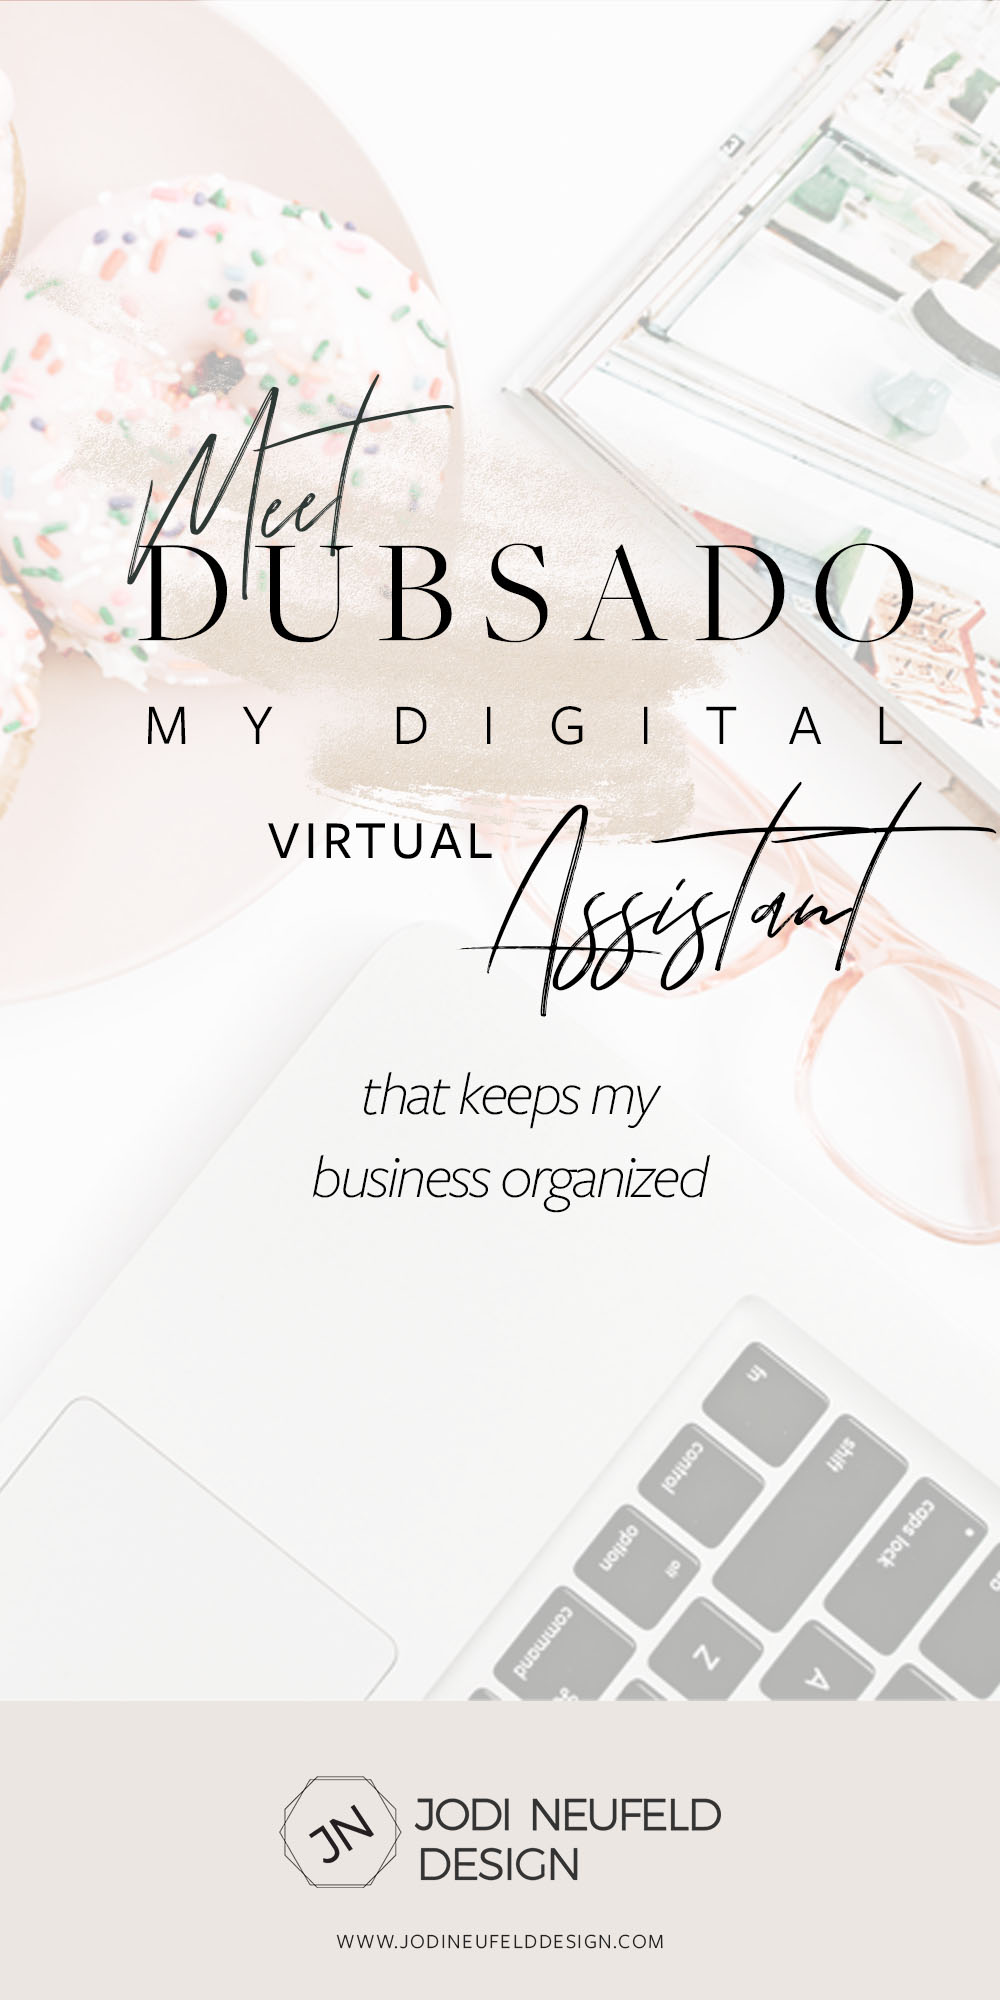 Meet Dubsado by Jodi Neufeld Design - my digital virtual assistant that keeps my business organized